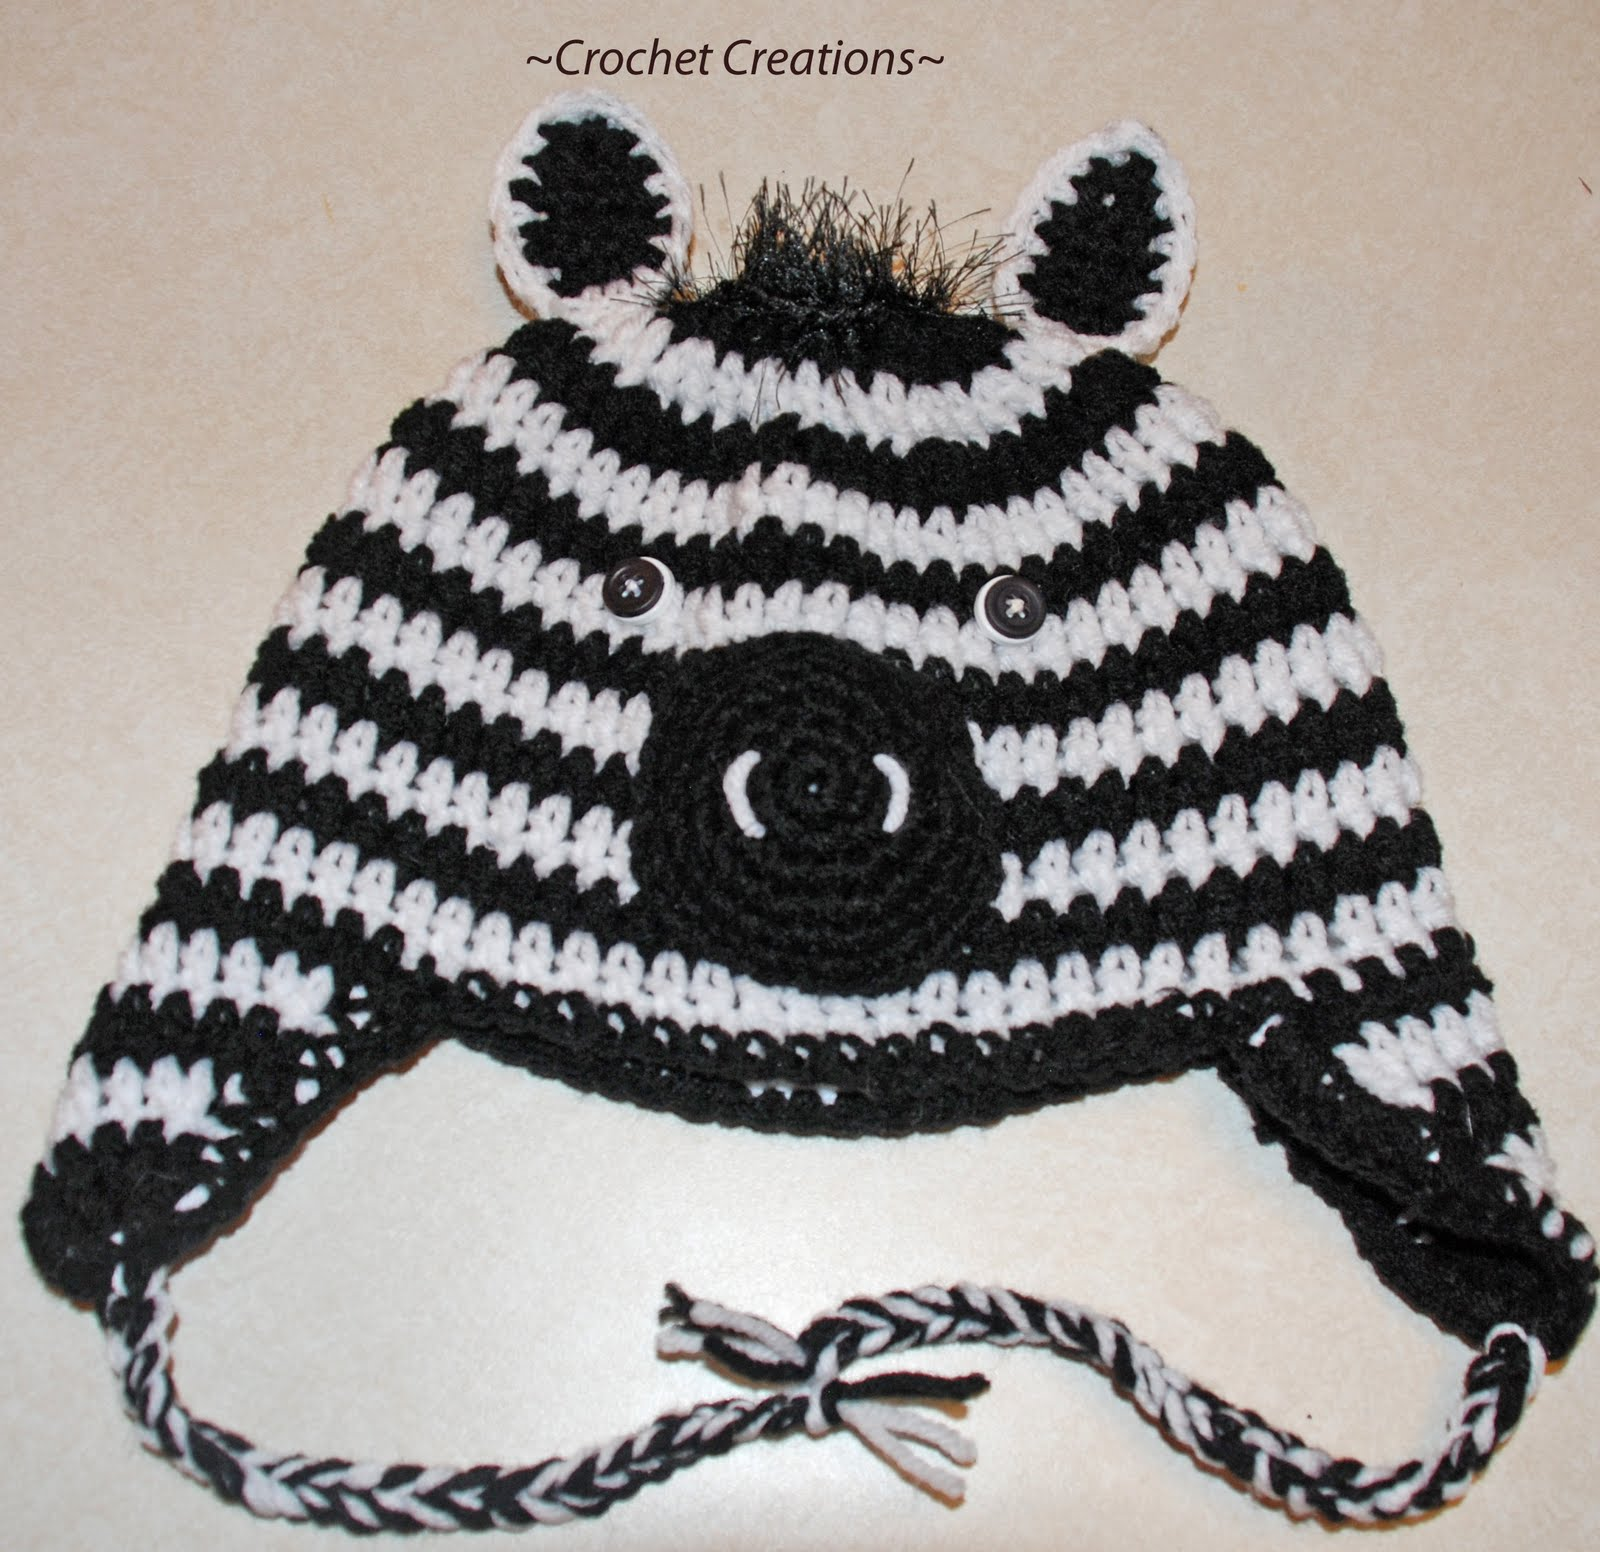 Crochet Pattern Zebra Hat : ANIMAL PRINT CROCHET PATTERN Crochet Patterns